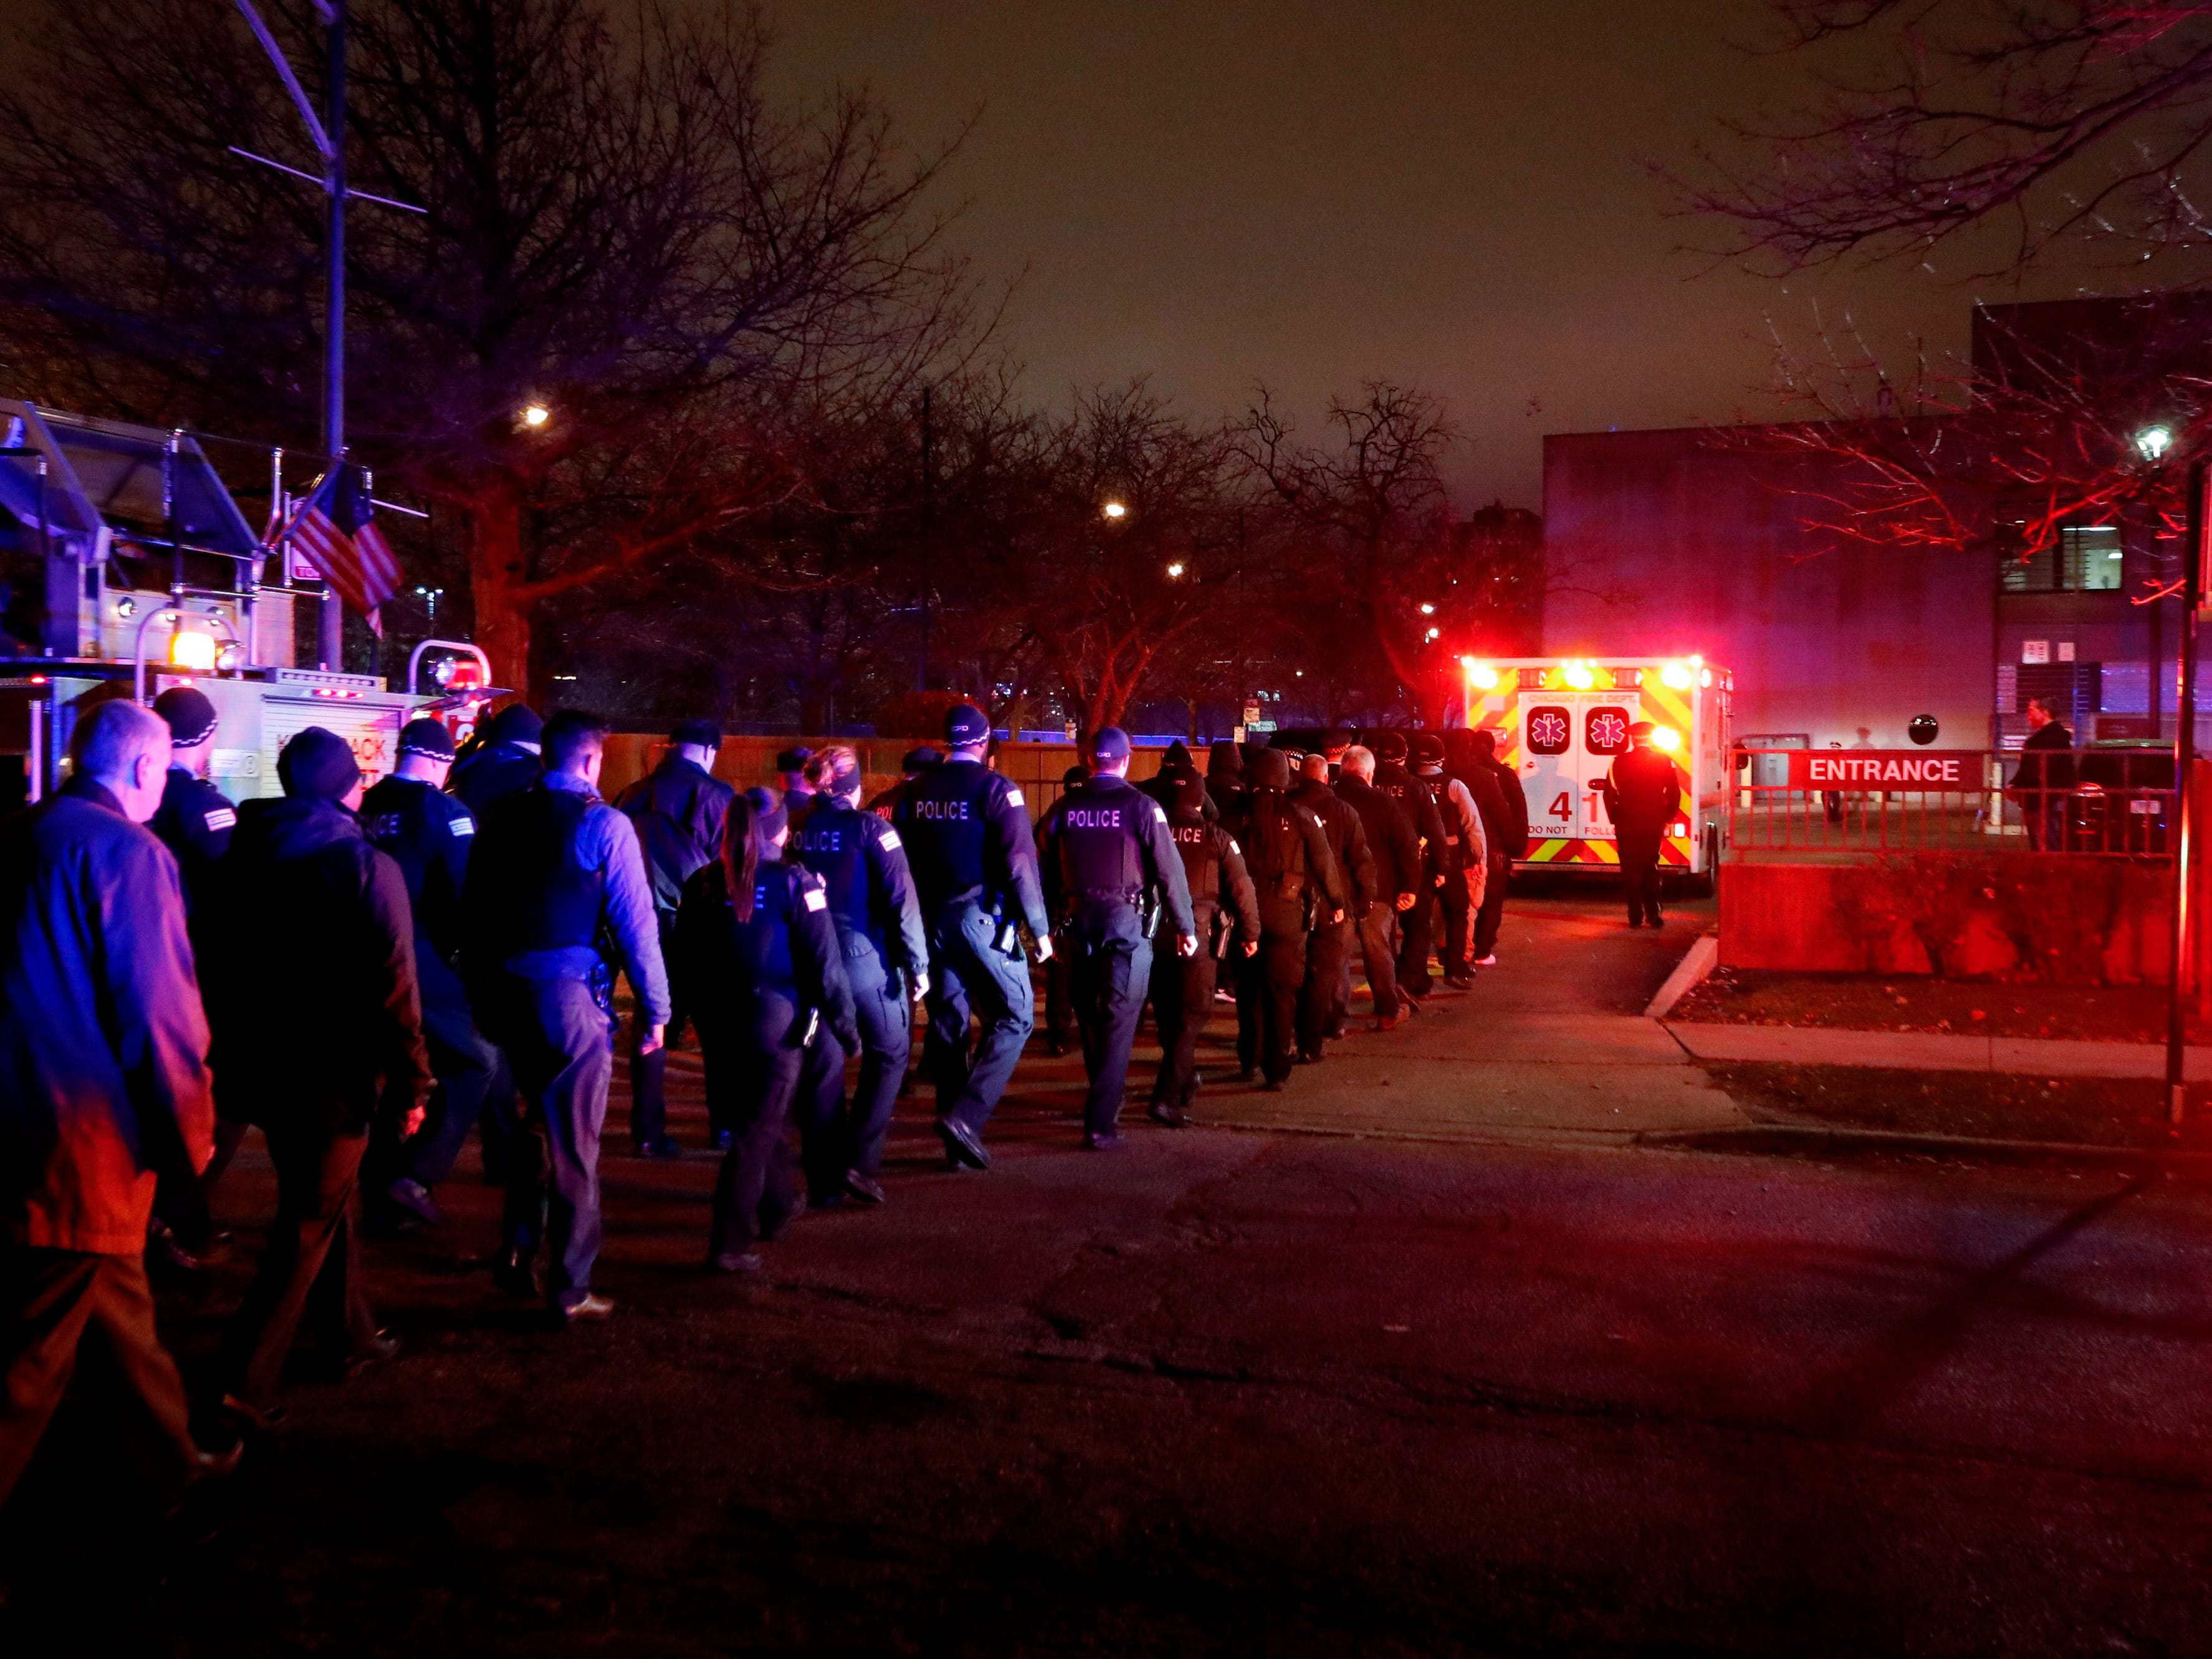 The body of slain Chicago police officer Samuel Jimenez  is escorted to the Medical ExaminerÕs office on Nov. 19, 2018 in Chicago.